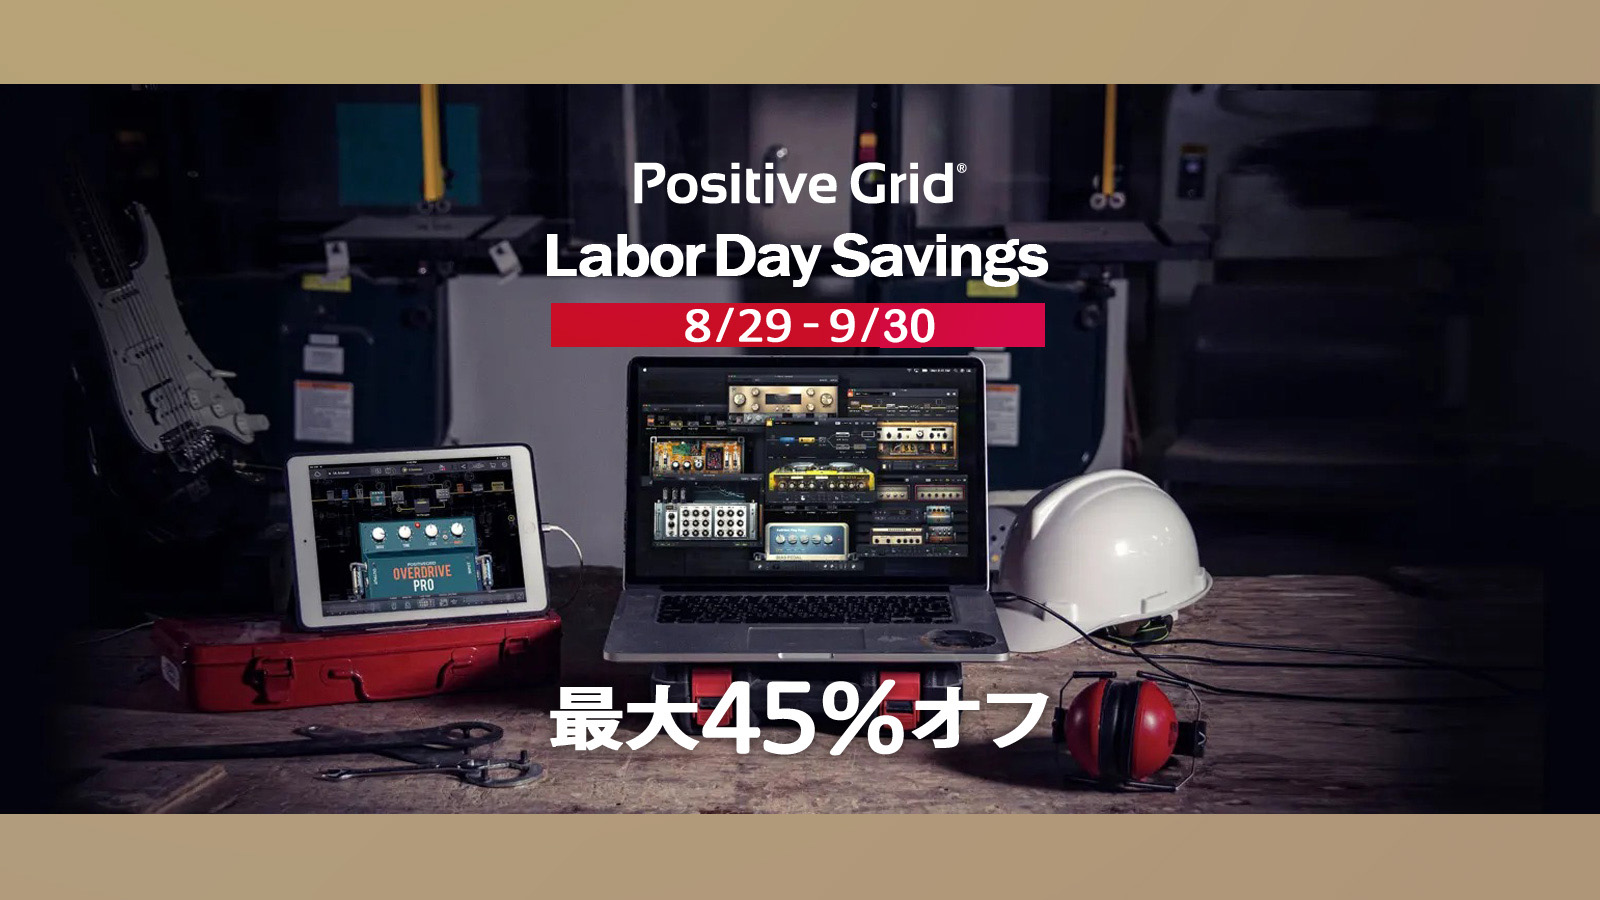 BIAS FX 2.0も特別価格!Positive Grid Labor Day Savings プロモーション